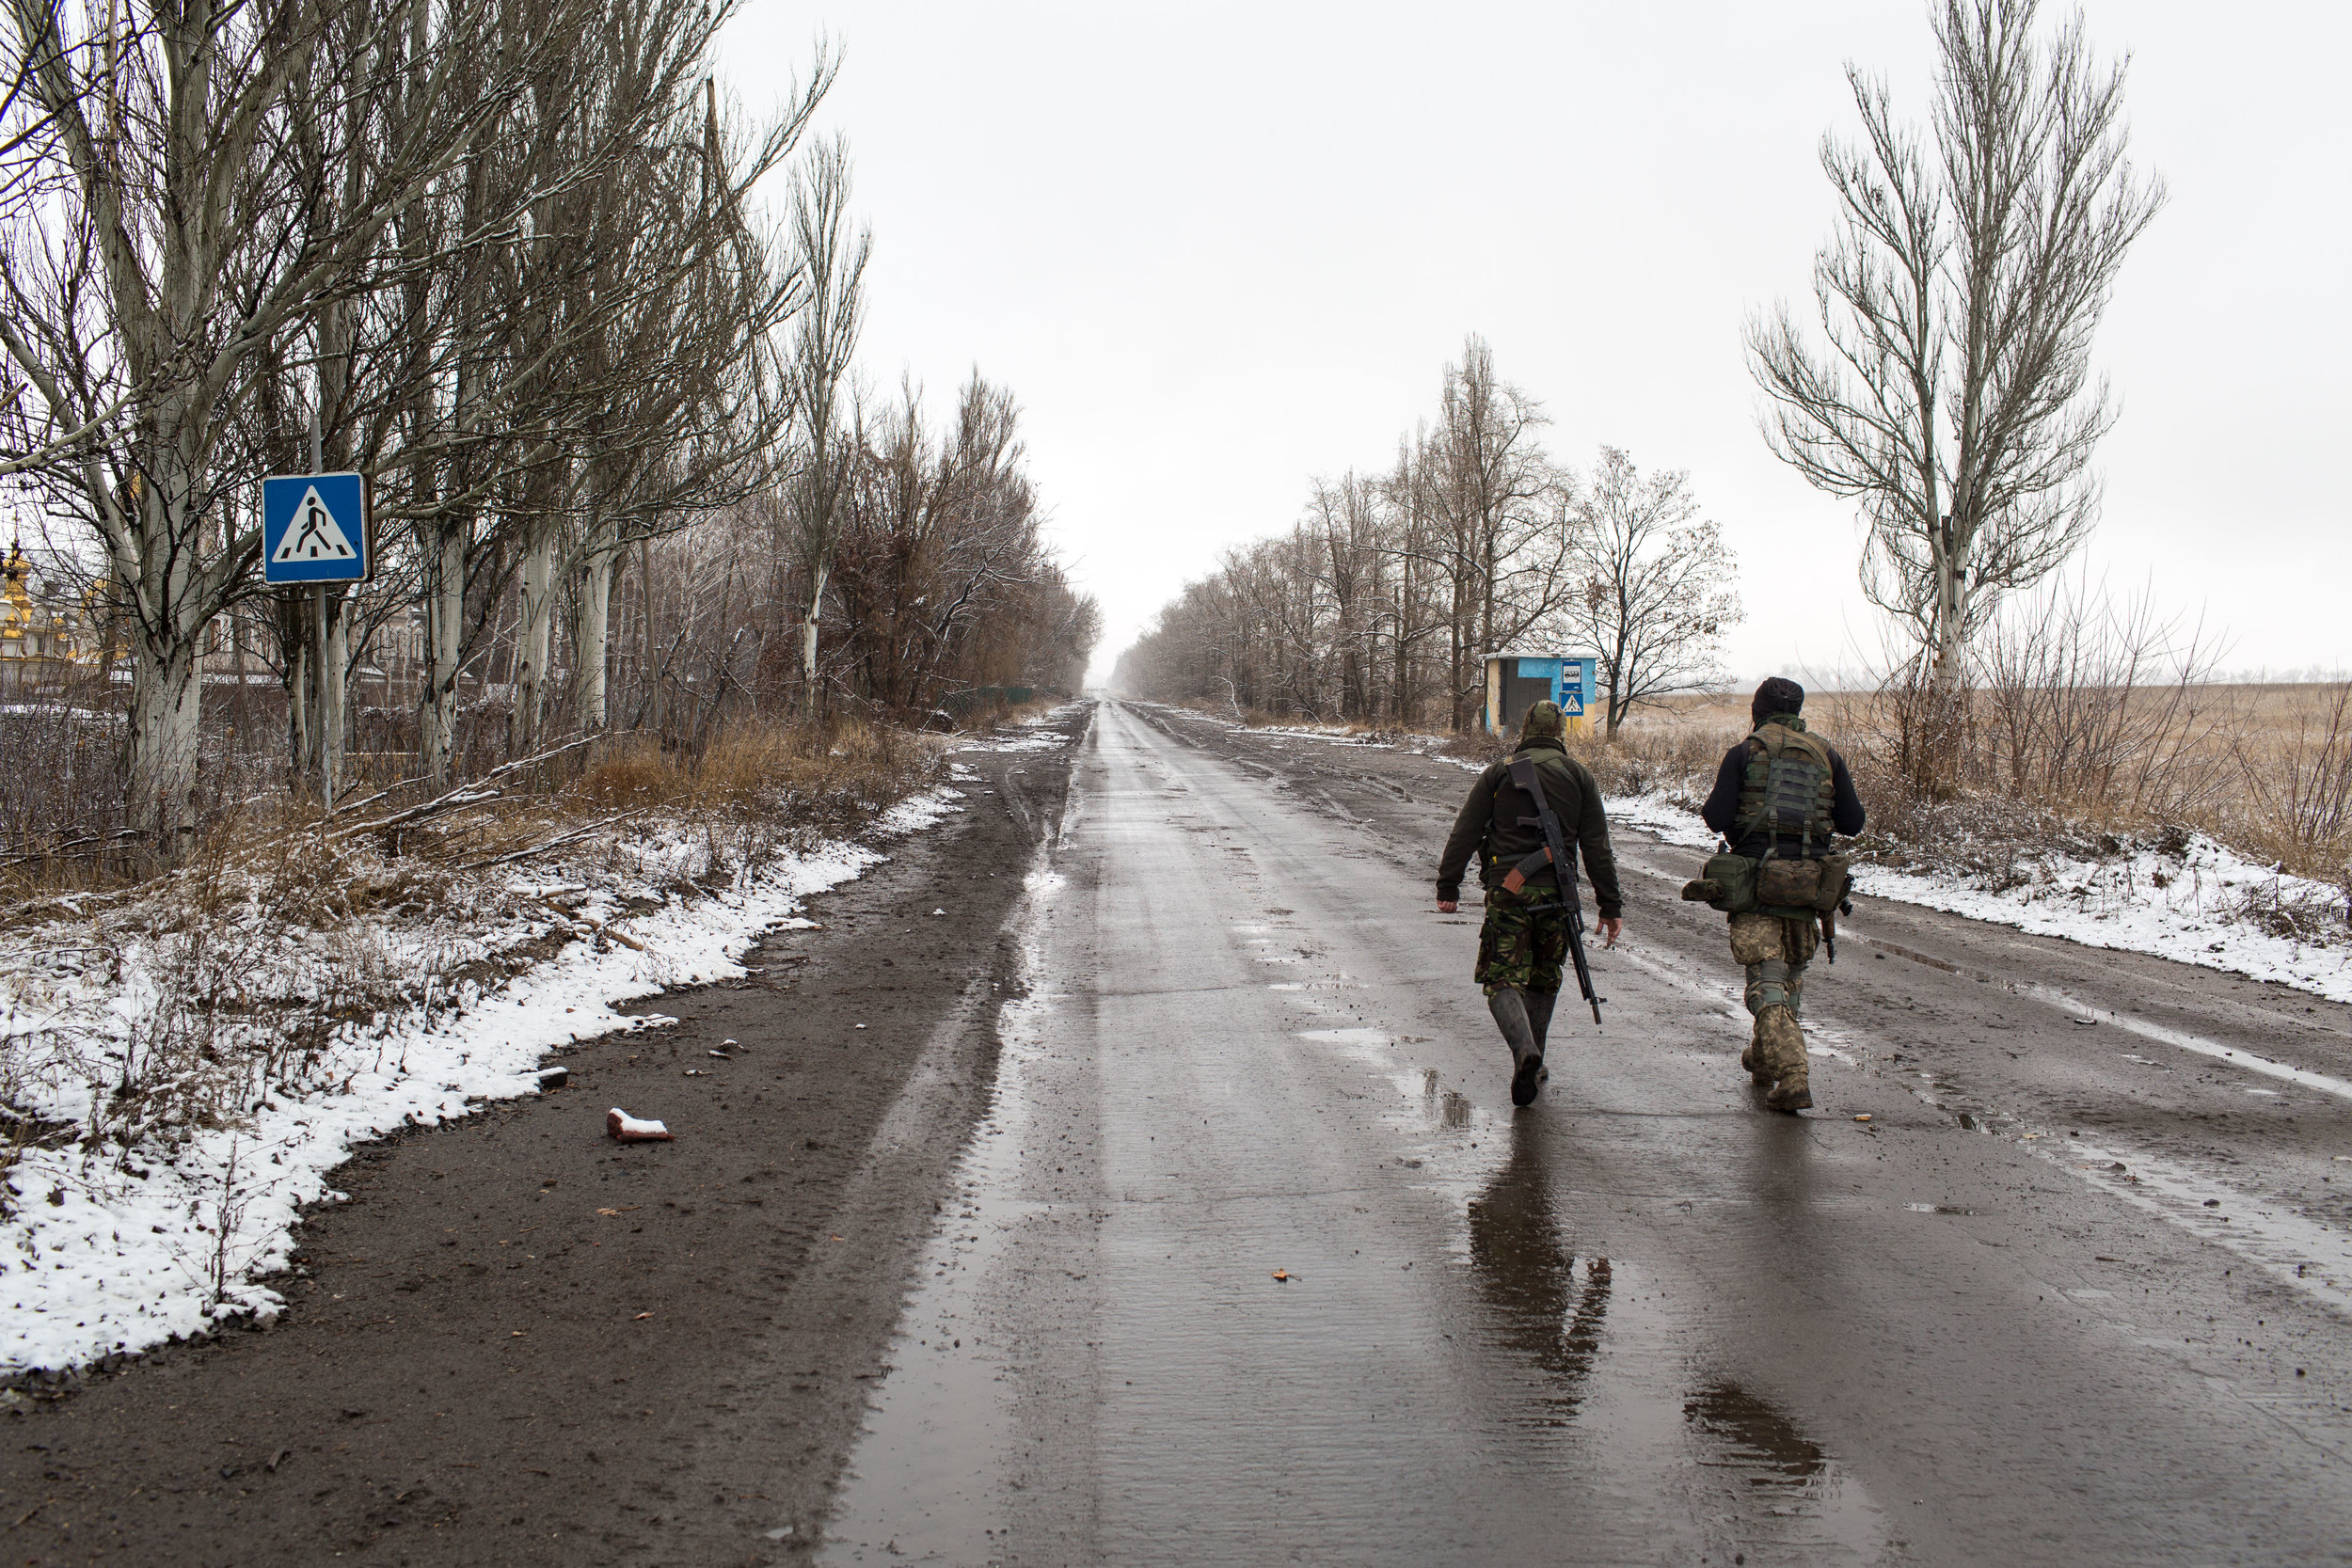 The main road into Pisky, a village that held significant geographical advantage to Ukrainian strategies throughout the entirety of the battle for Donetsk Oblast. Military vehicles ferry supplies in and out along this road, as well as provide emergency medical support for soldiers wounded in conflict. Since beginning nearly two years ago, The War in Eastern Ukraine has claimed the lives of over 8,000 military personnel and civilians.